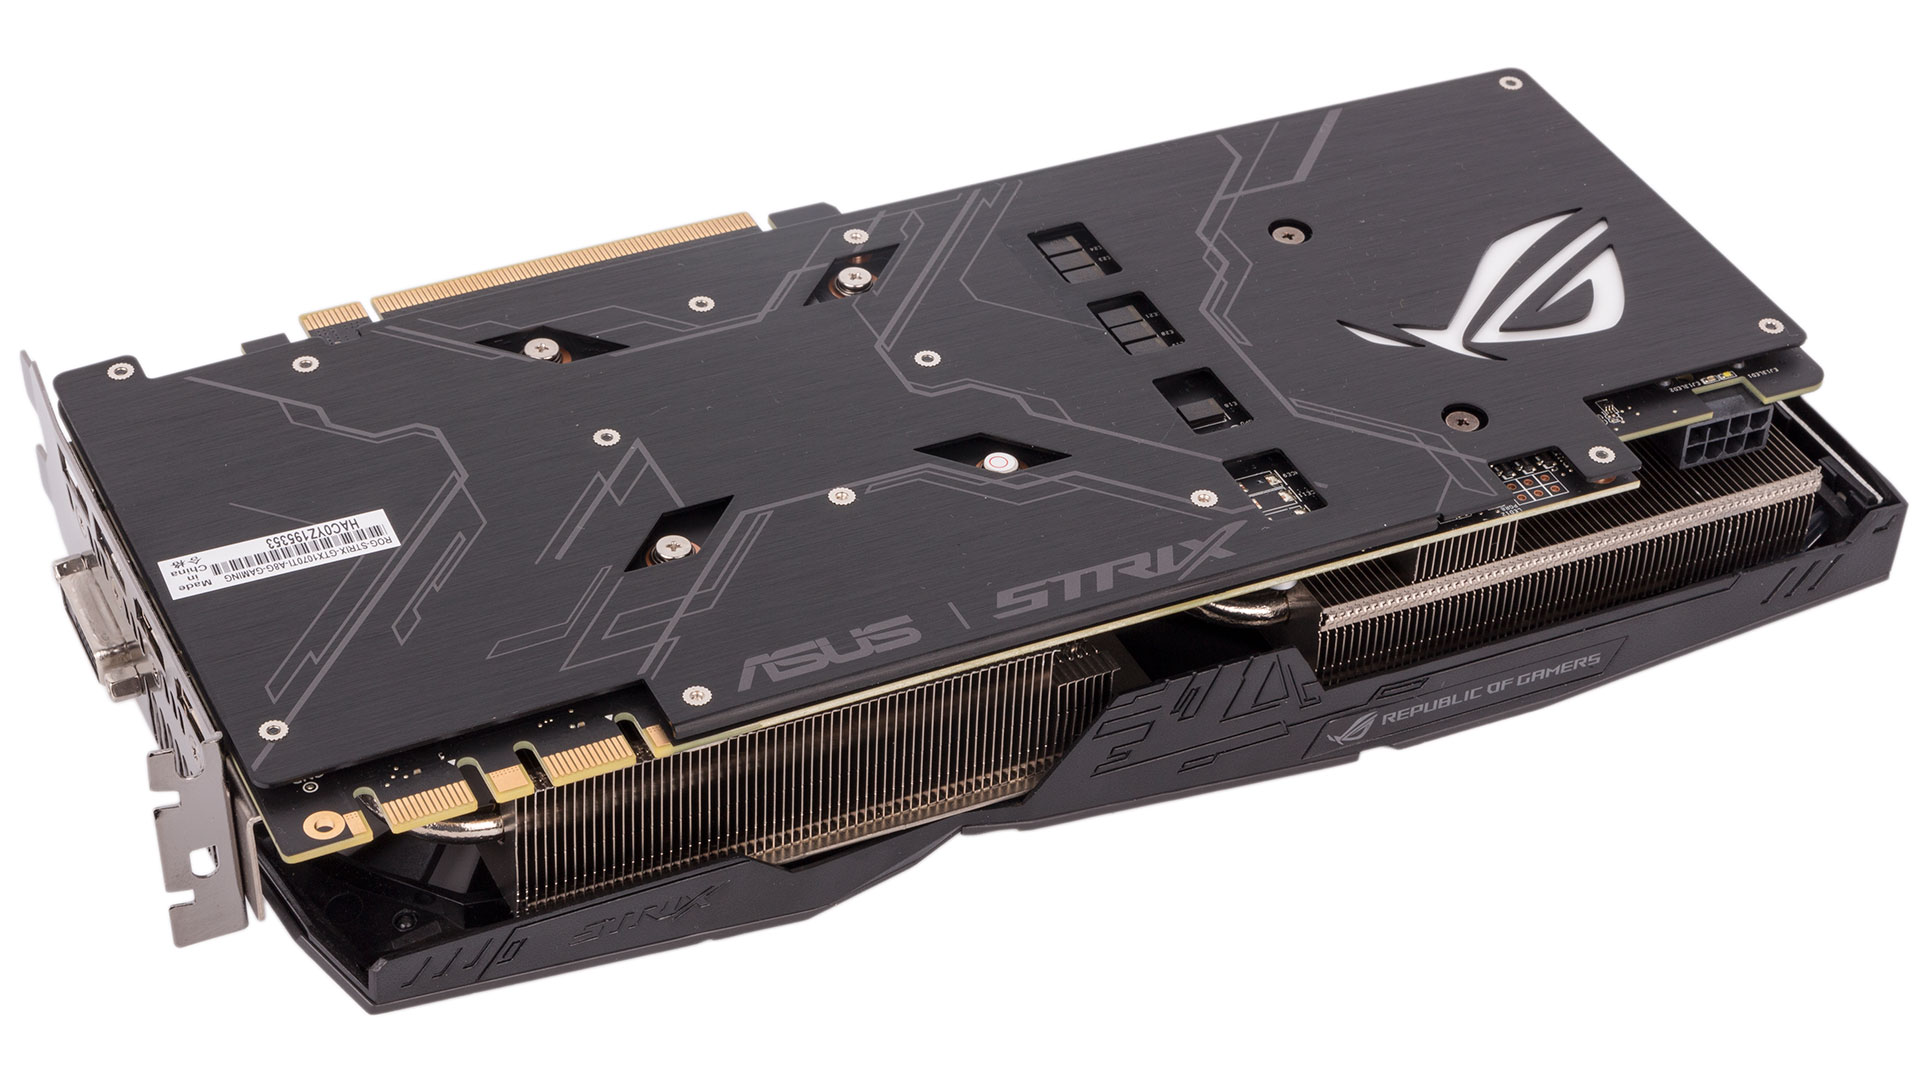 Asus GeForce GTX 1070 Ti ROG Strix Advanced Review | bit-tech net